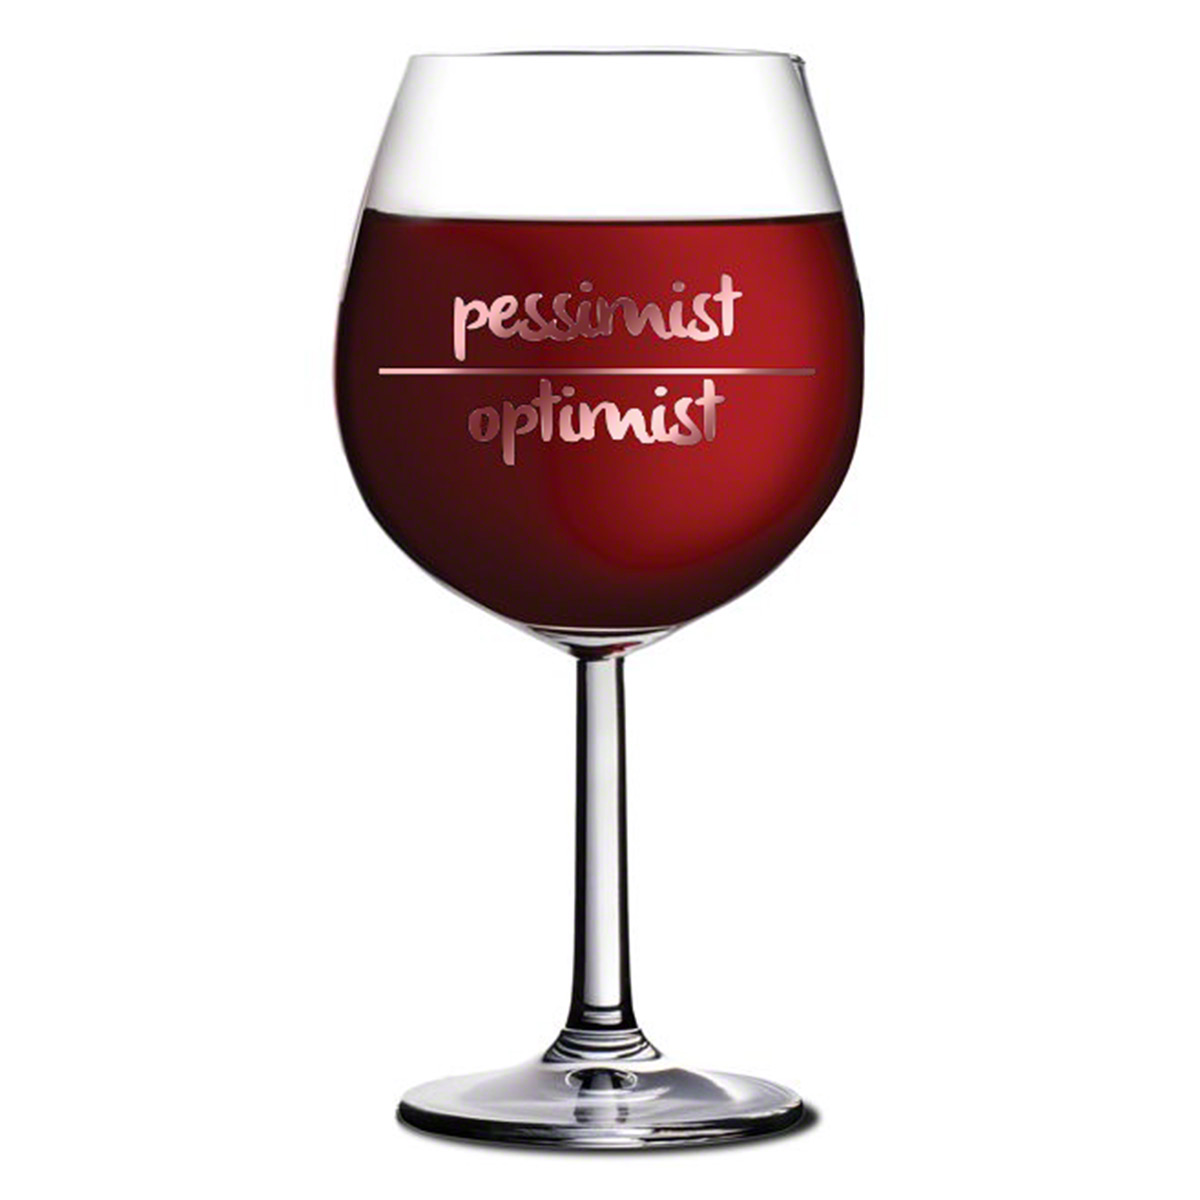 Pessimist Optimist XL Funny Wine Glass